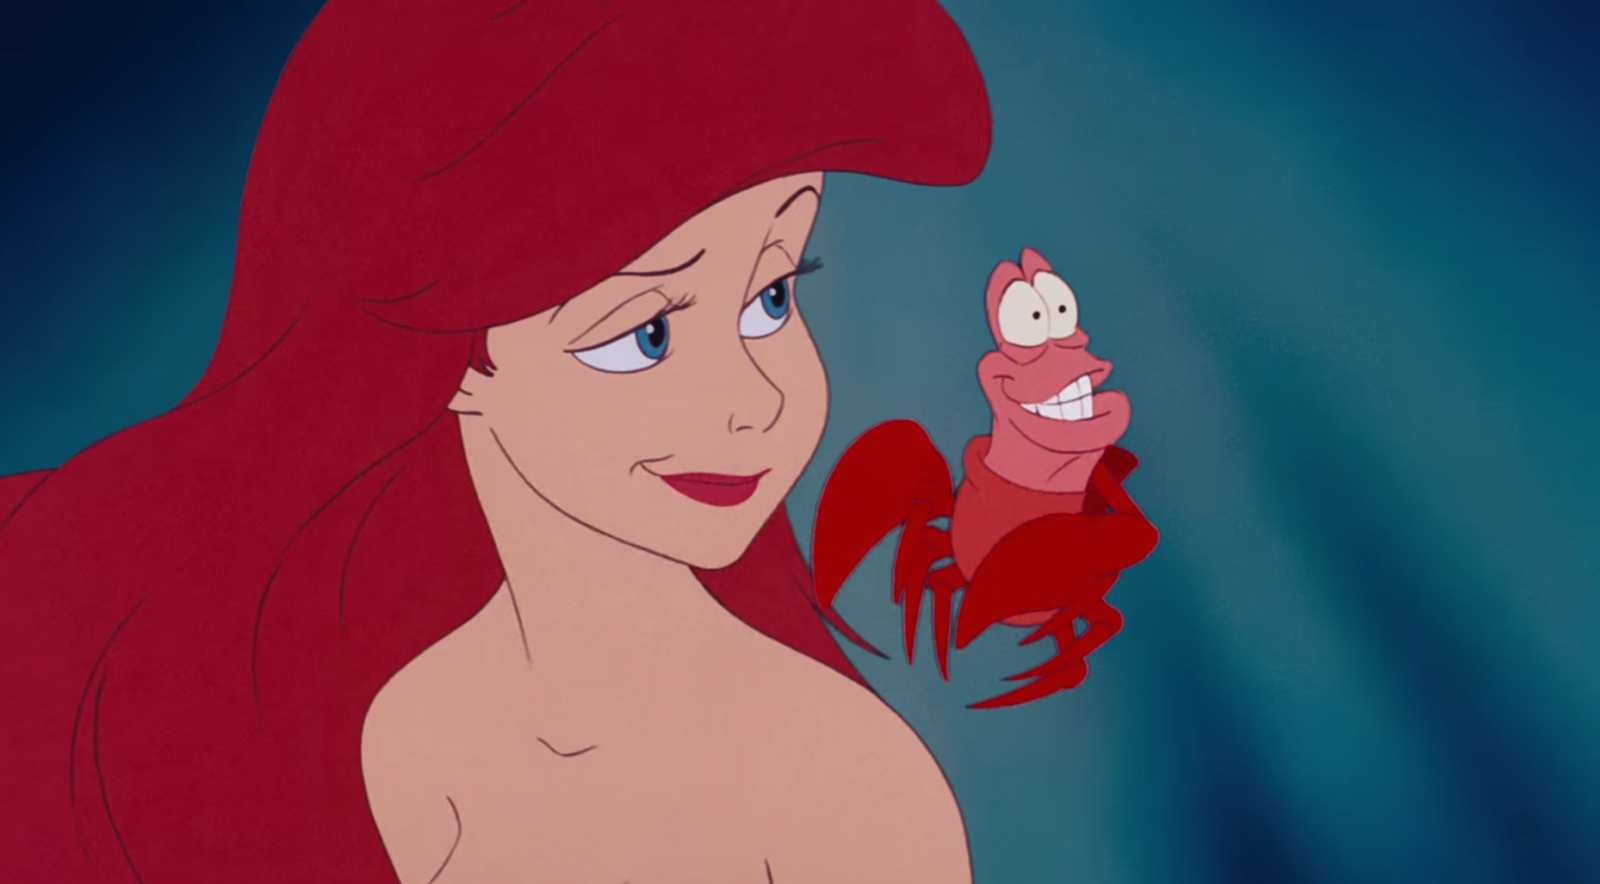 Thoughts On: The Little Mermaid - Character & Audience